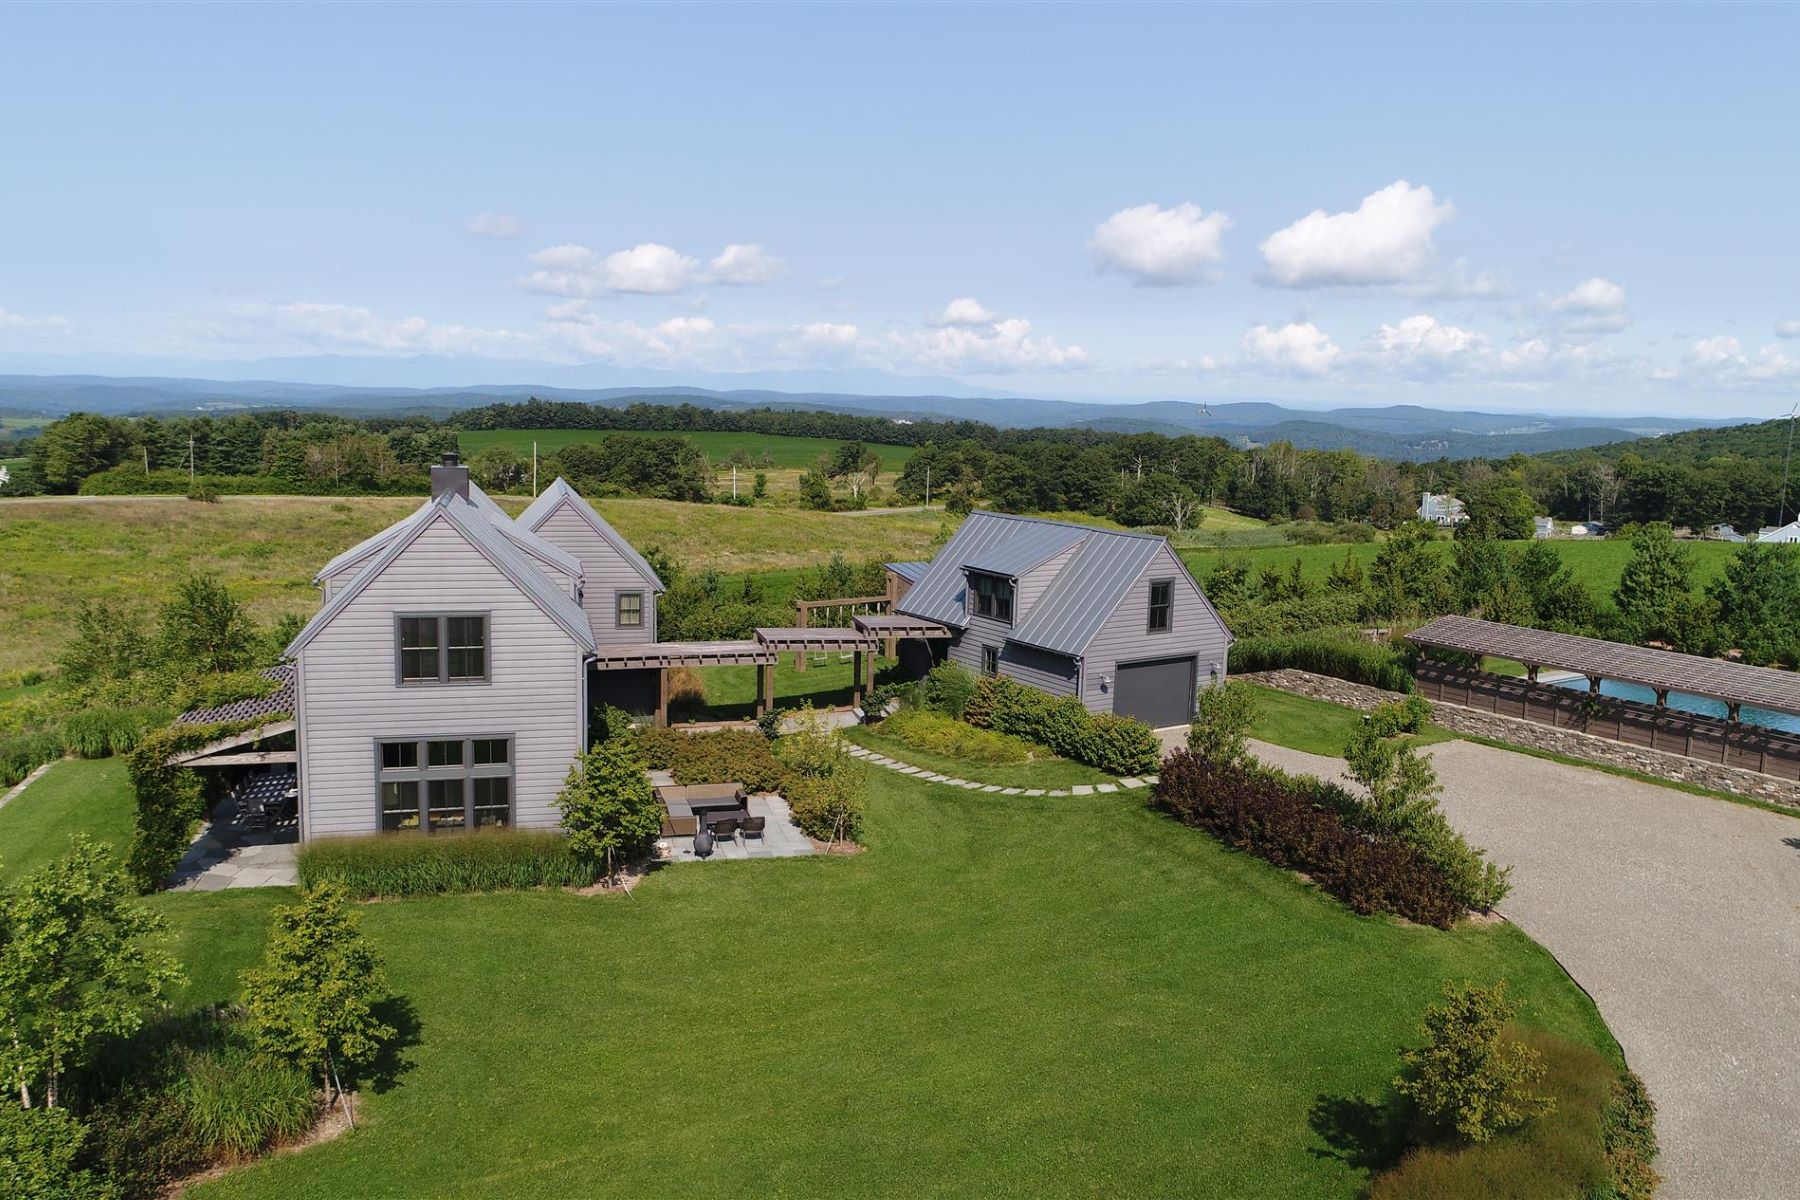 Single Family Home for Sale at Modern Mountain Gem 56 Carson Road Ancram, New York 12546 United States